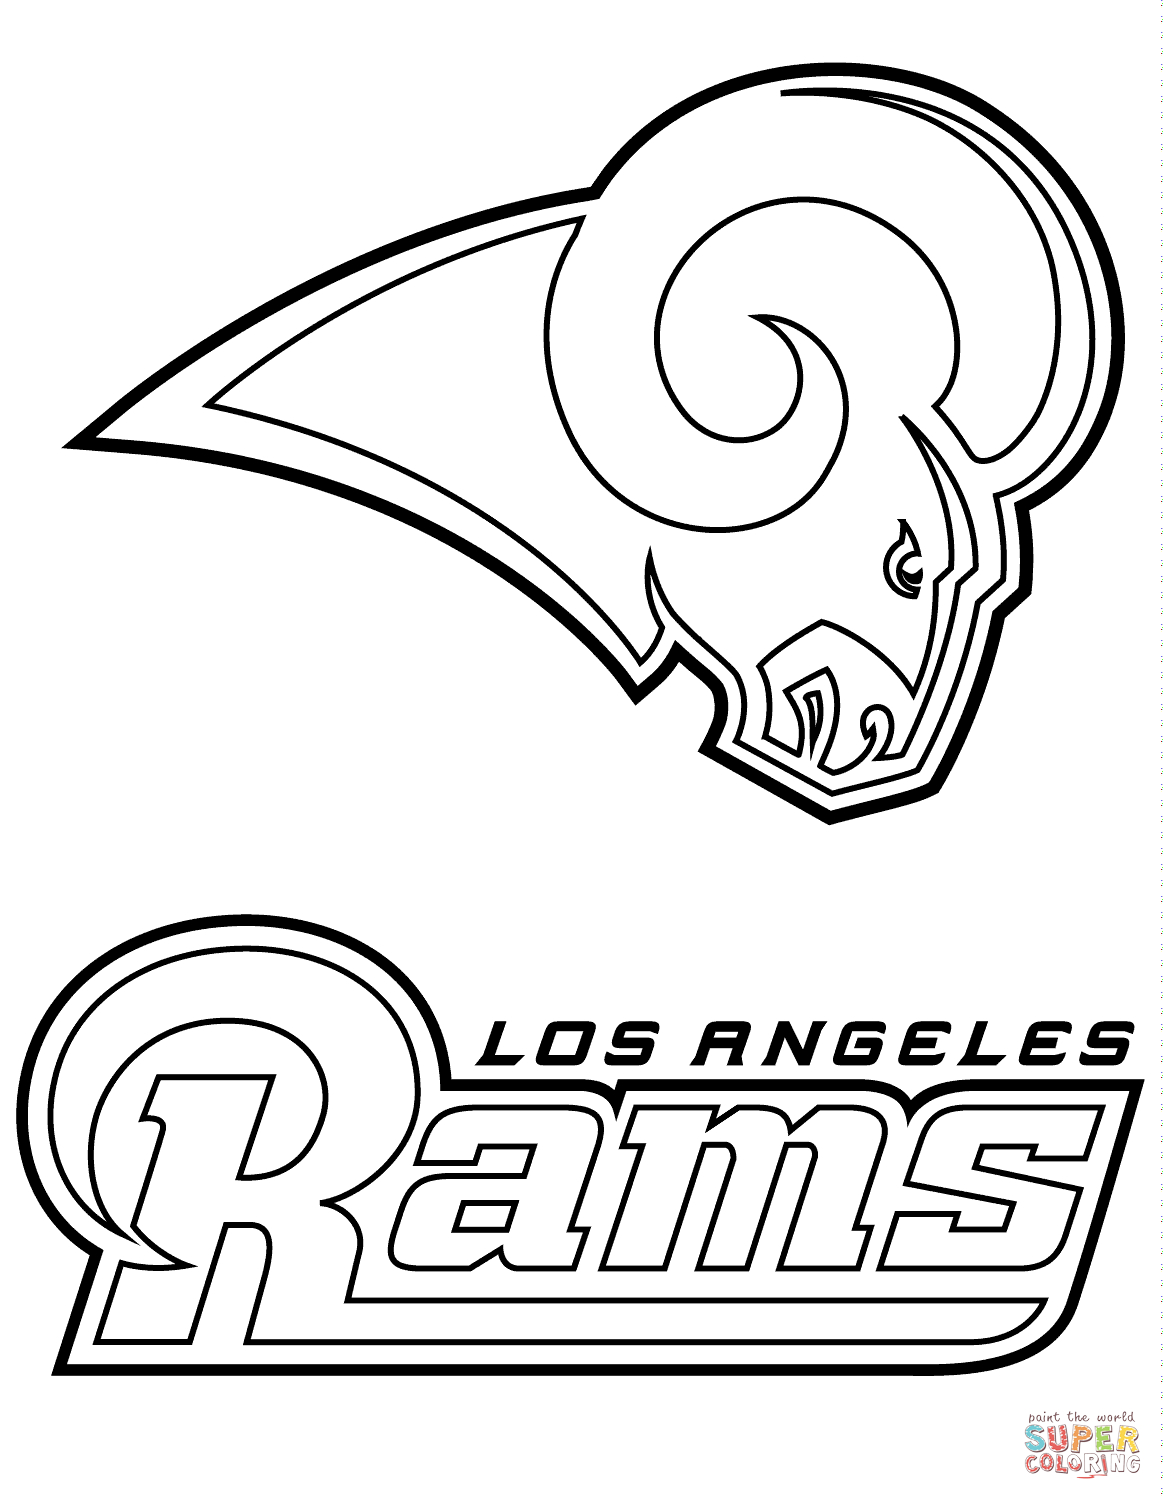 Brilliant Image Of Super Bowl Coloring Pages Free